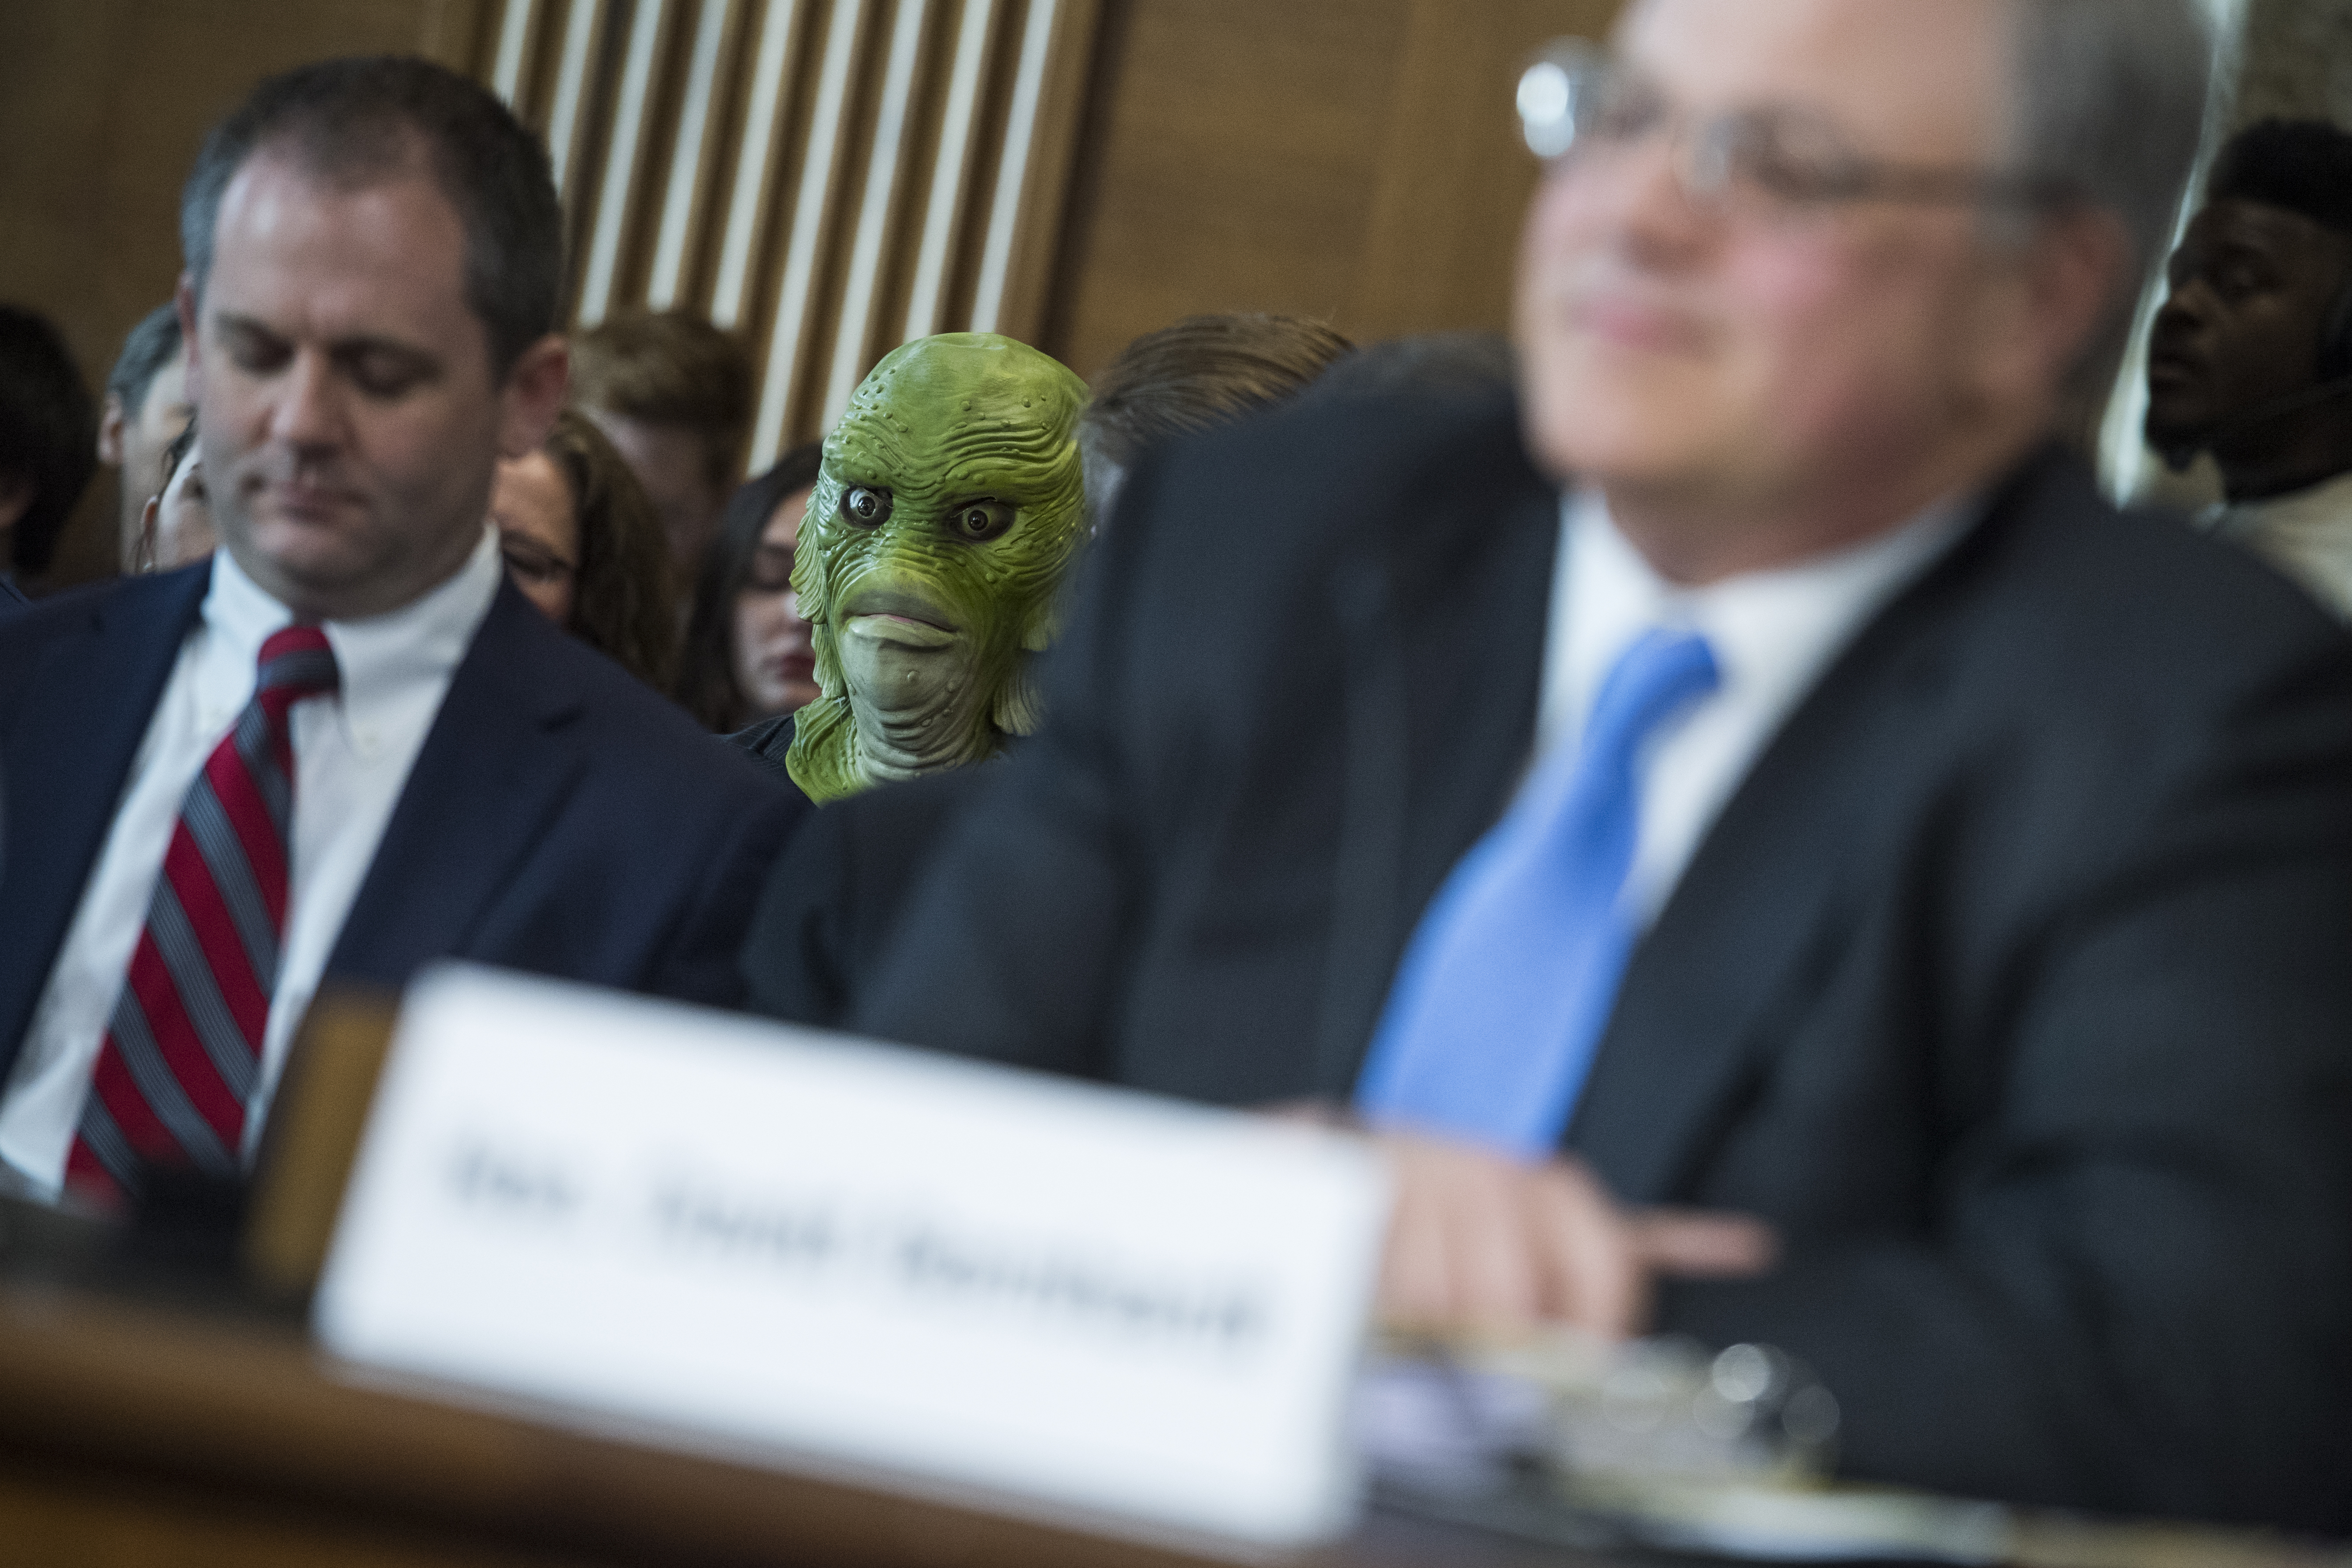 A protester from Clean Water Action is  seen during the during the Senate Energy and Natural Resources confirmation hearing for David Bernhardt, nominee to be Secretary of the Interior, in Dirksen Building on Thursday, March 28, 2019. (Tom Williams/CQ Roll Call)